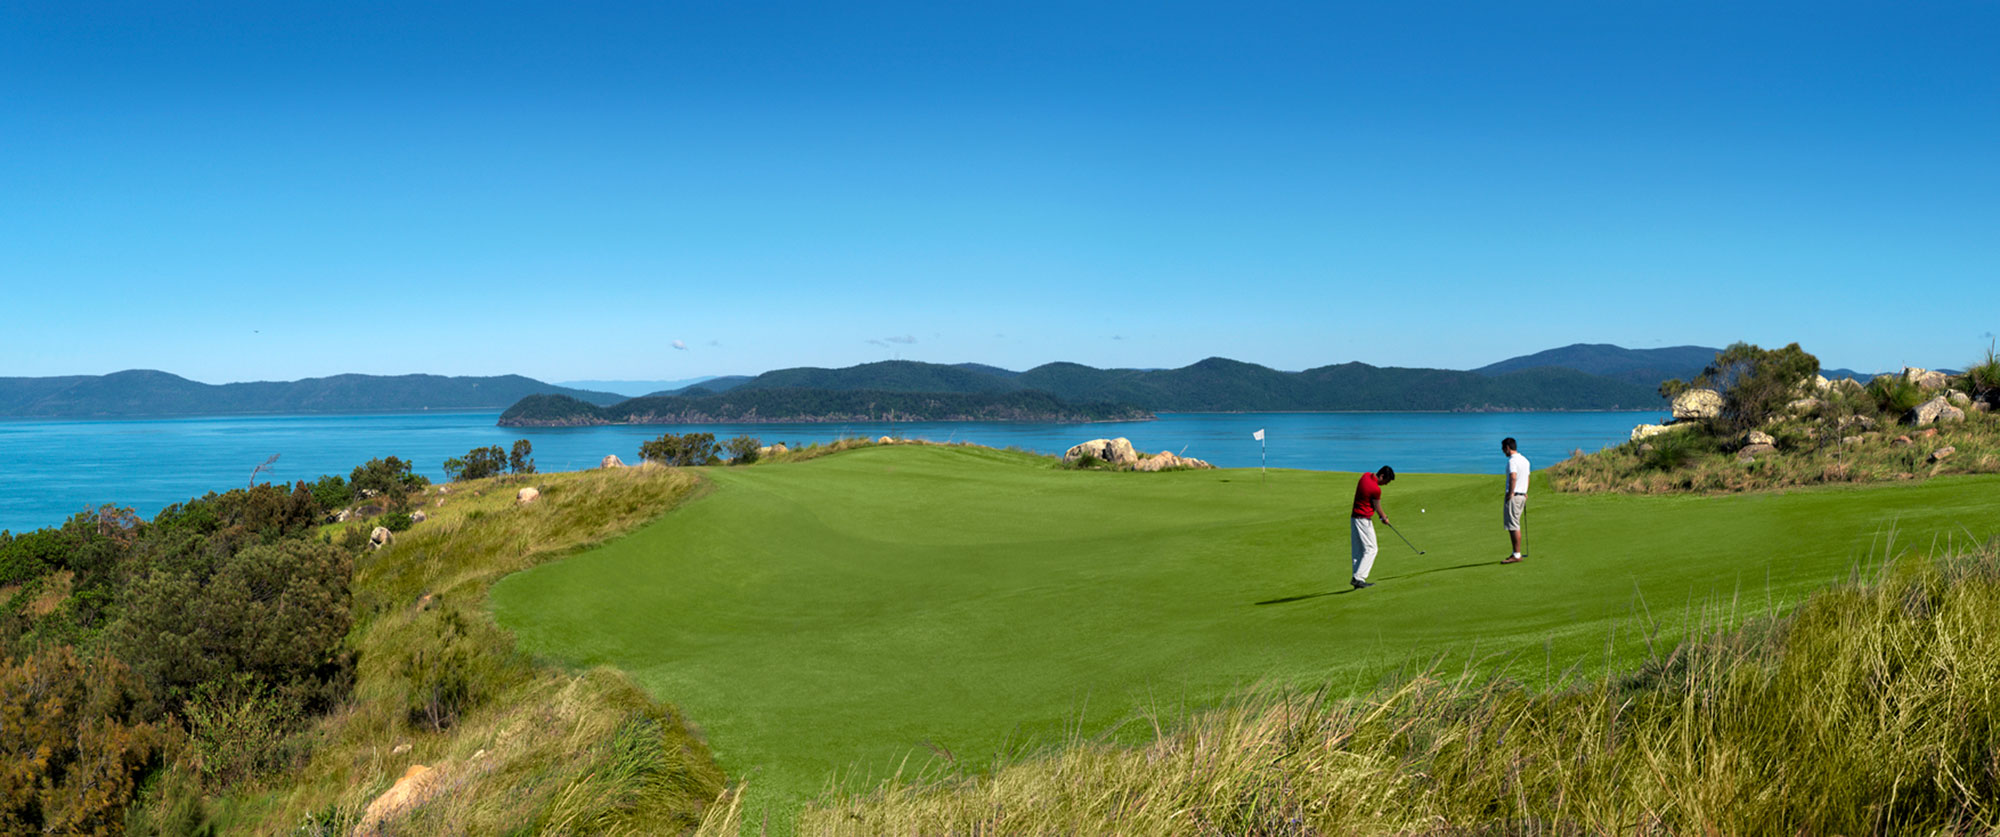 Hamilton Island Golf Club - Getaways Australia: Great Golf Courses of Australia - Top 100 Golf Courses - Golf vacation specialists Australia